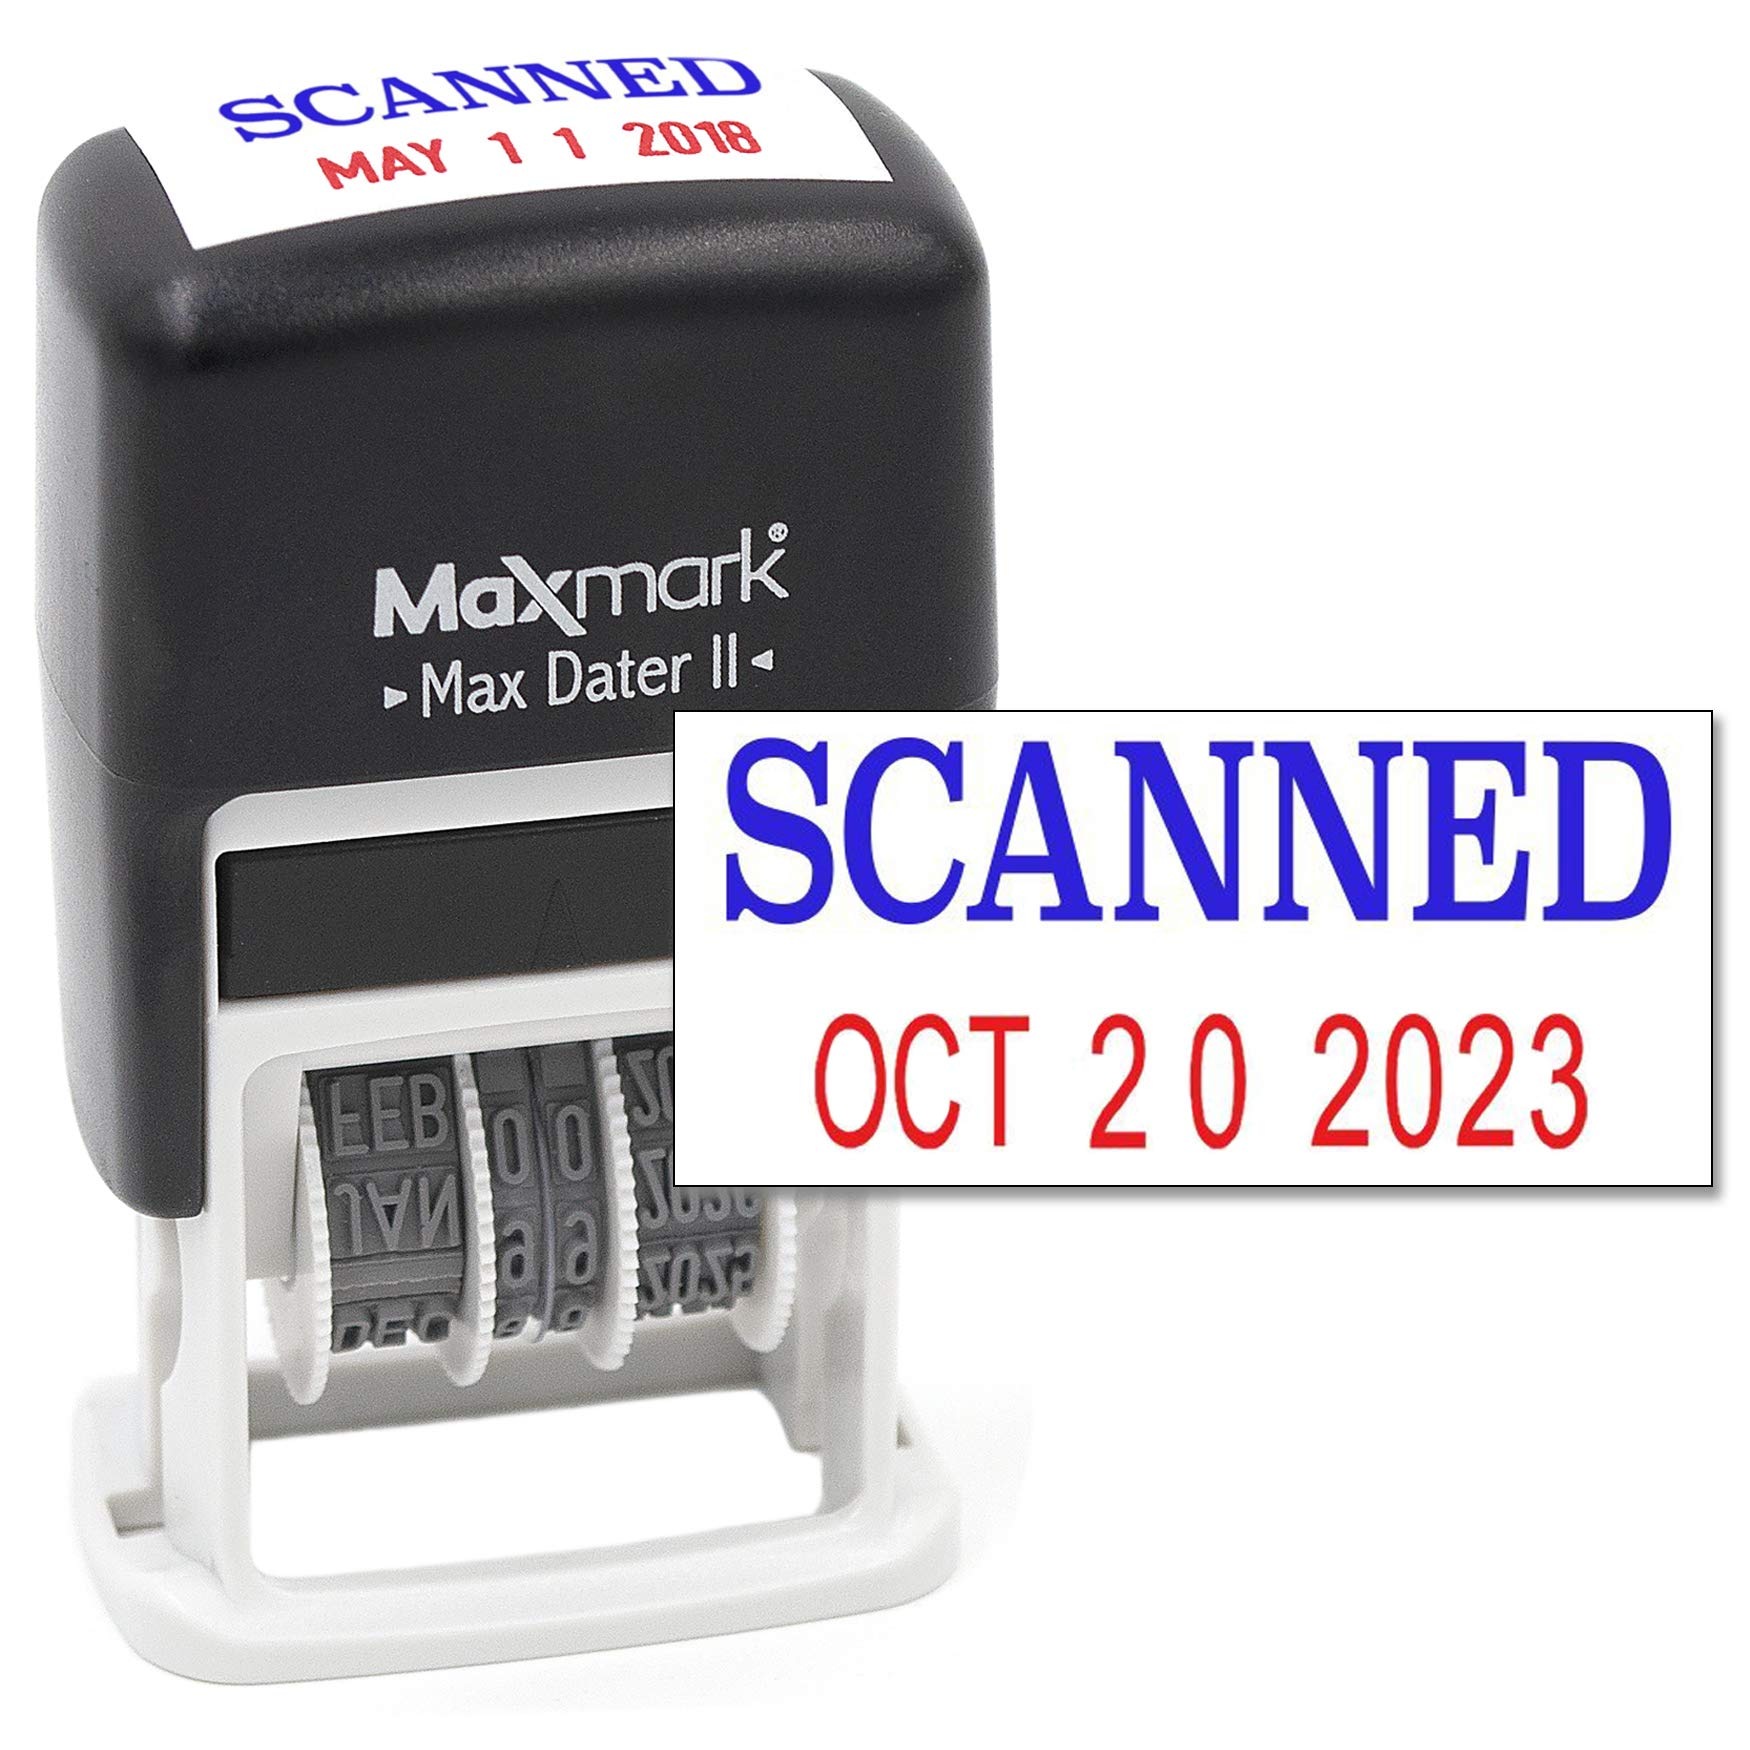 MaxMark Self-Inking Rubber Date Office Stamp with SCANNED Phrase BLUE INK & Date RED INK (Max Dater II), 12-Year Band